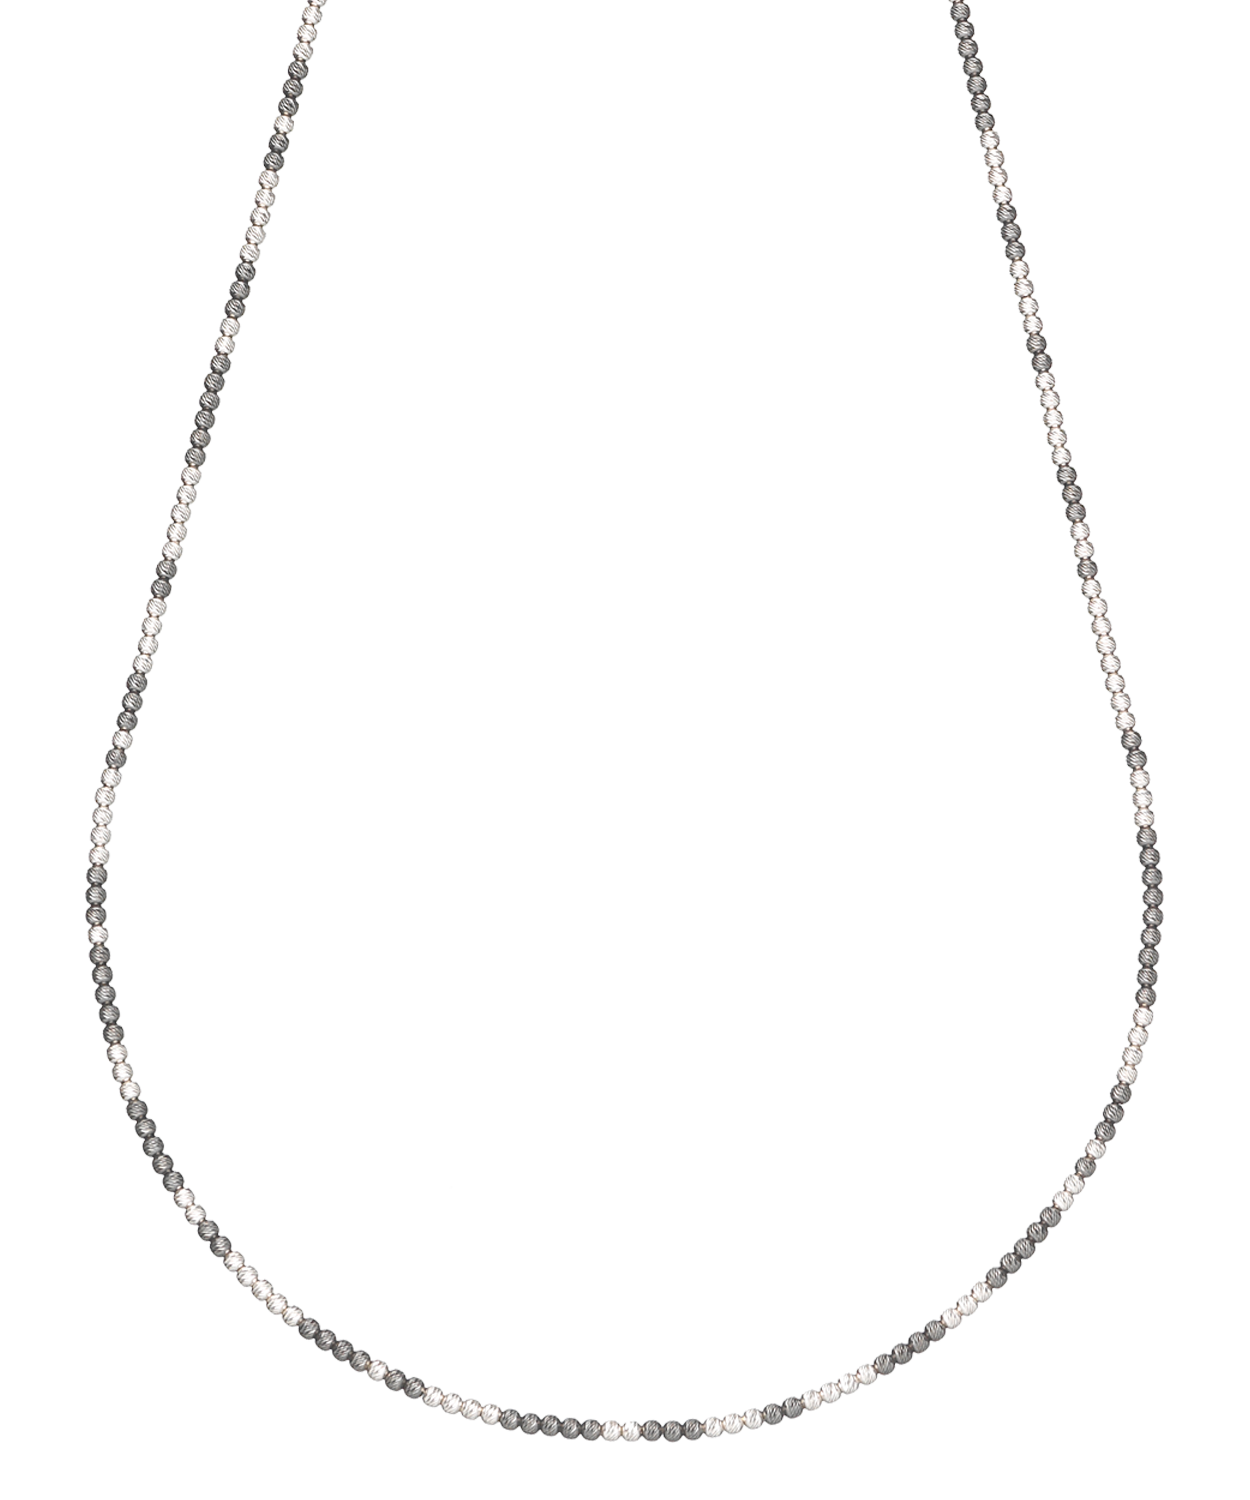 Long Discoball Necklace 18k White and Black Gold